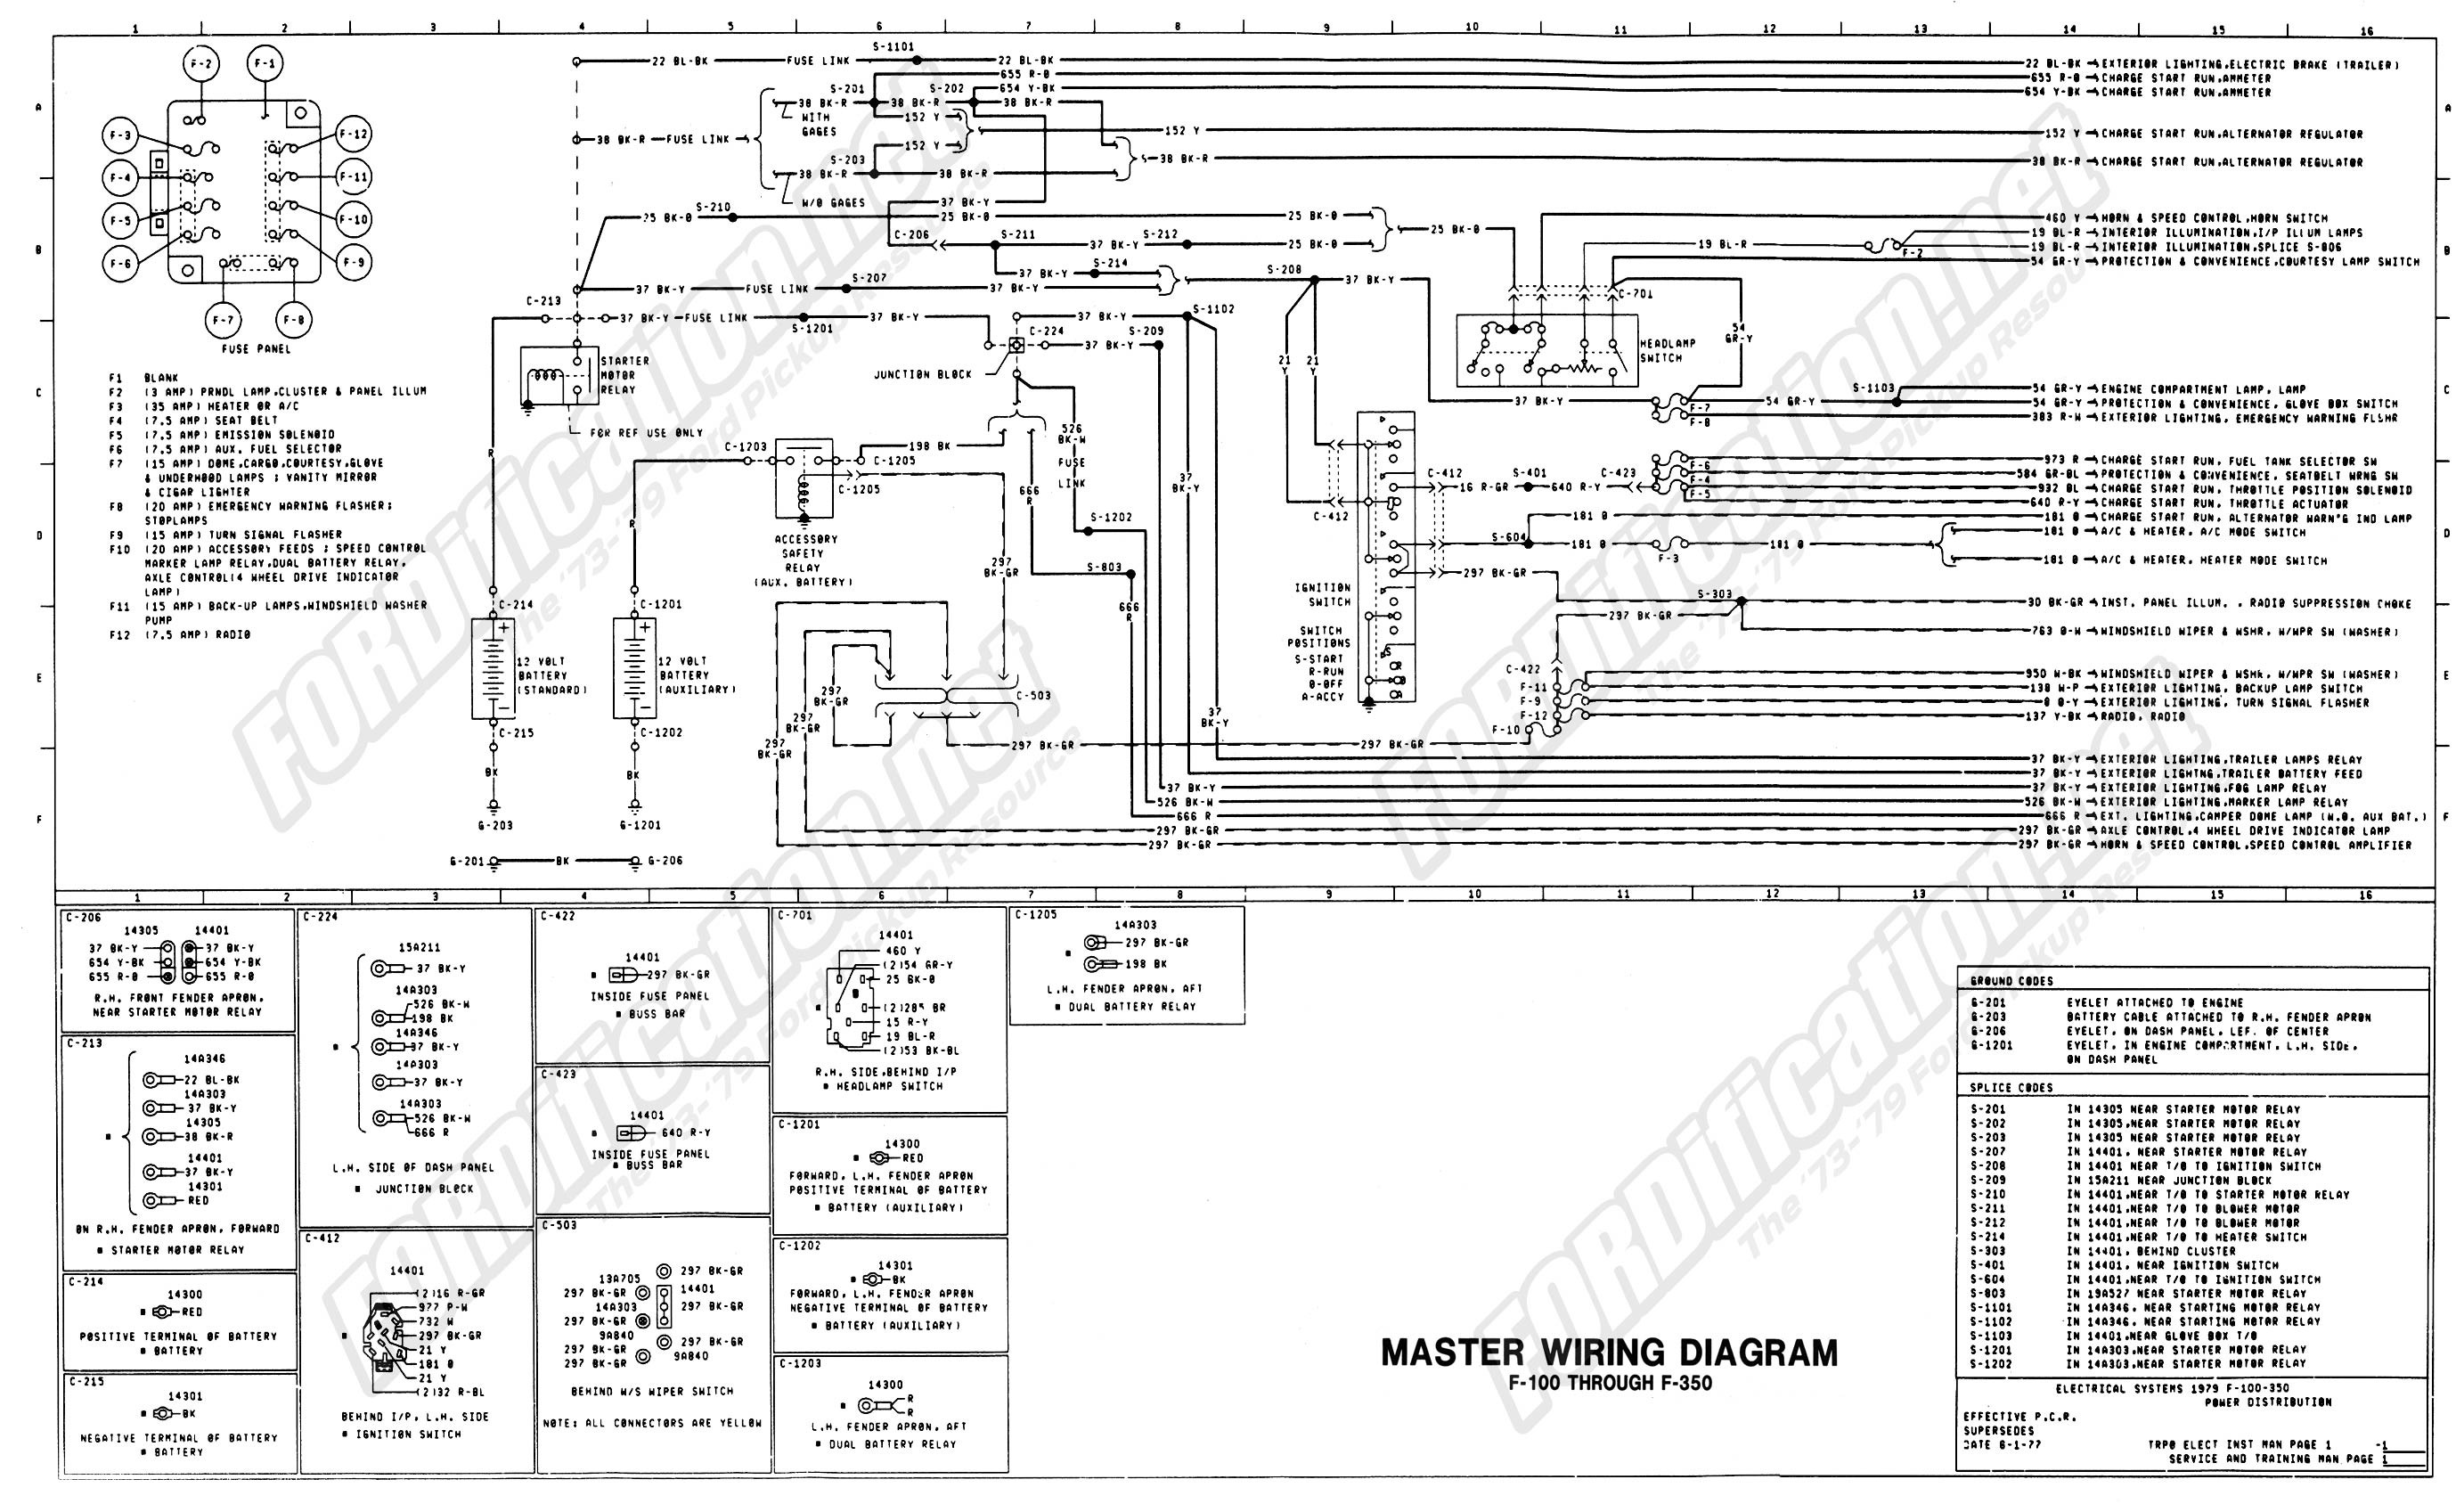 Wiring Diagram Color Codes Unique Wiring Diagram Image